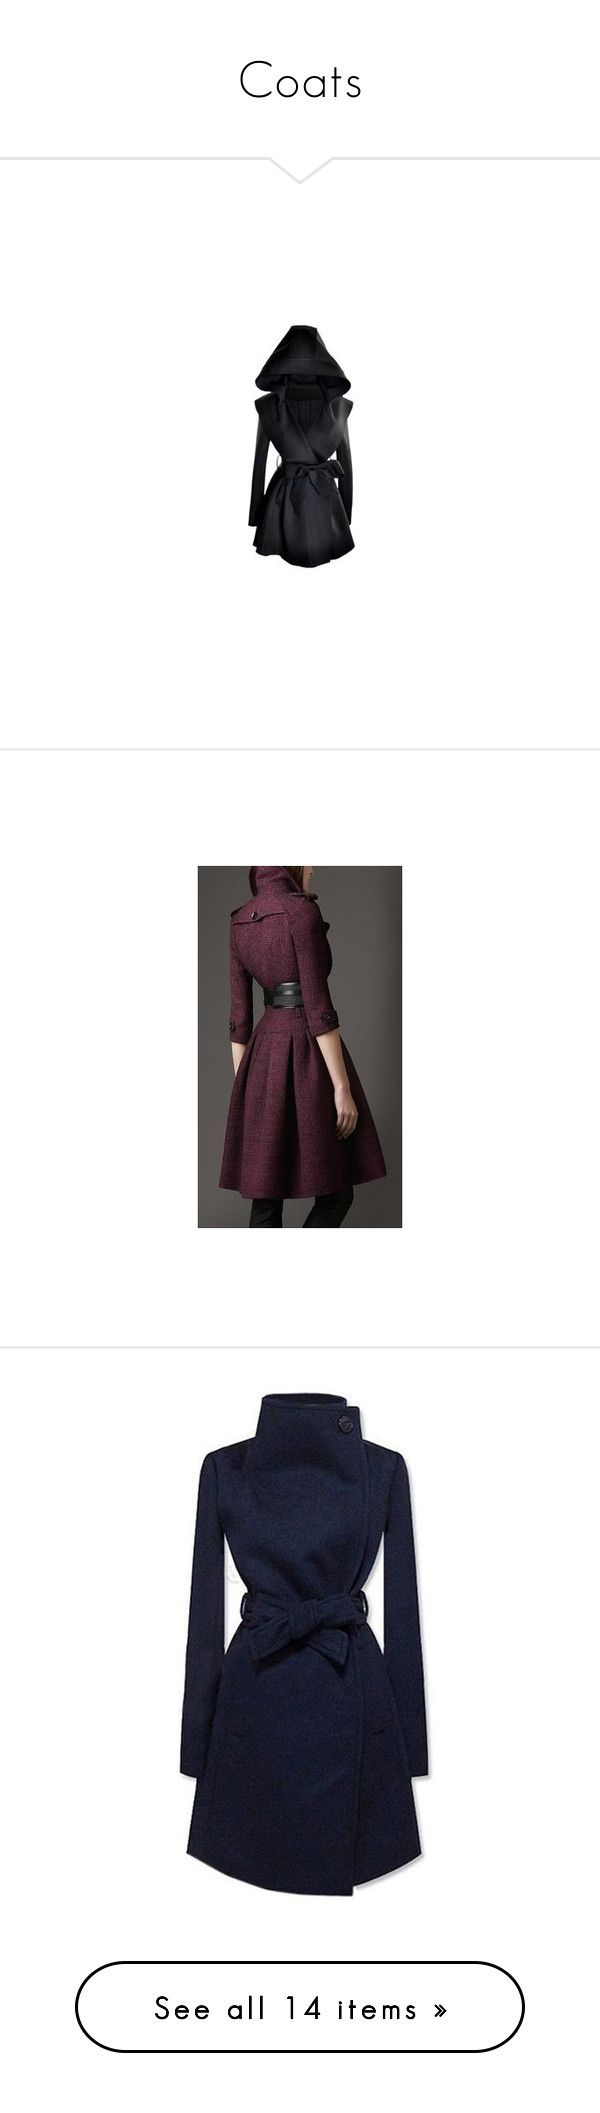 """""""Coats"""" by giselsimon ❤ liked on Polyvore featuring outerwear, coats, woolen coat, woolen trench coat, blue coat, wool coat, wide lapel coat, coats & jackets, house of fraser and brown coat"""